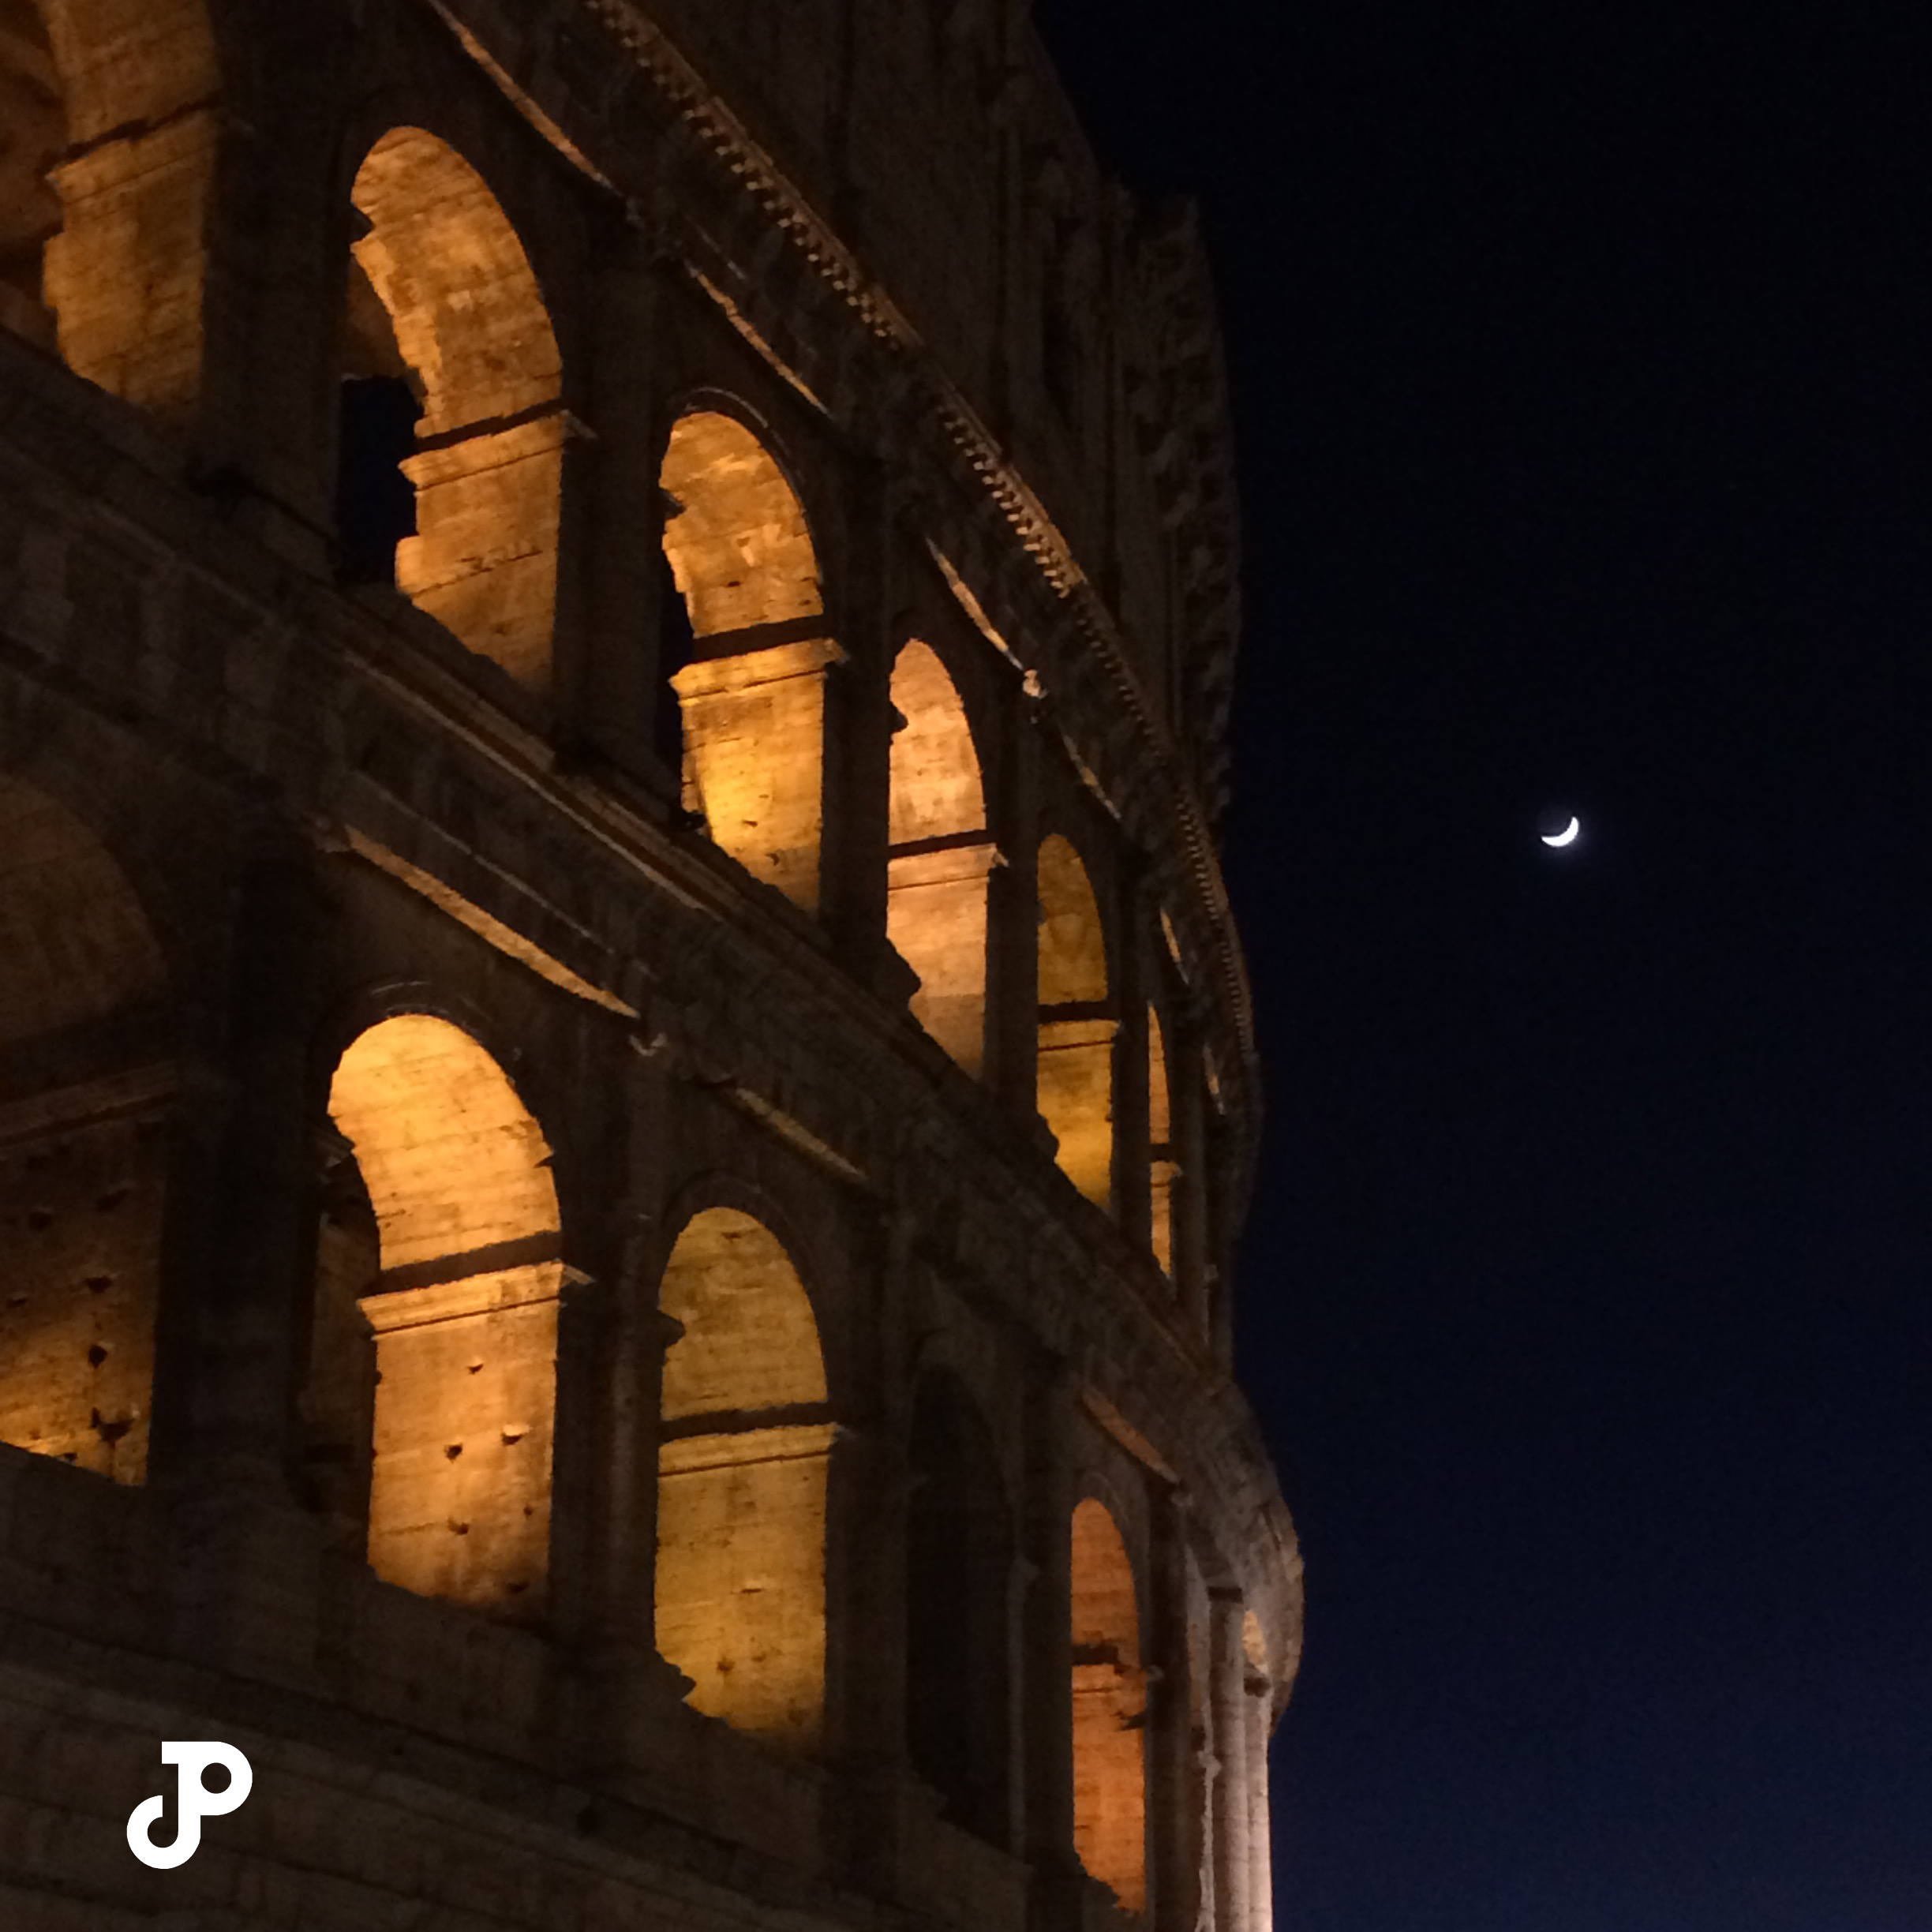 the Colosseum at night with its arches illuminated in gold light, and a crescent moon visible in the black sky